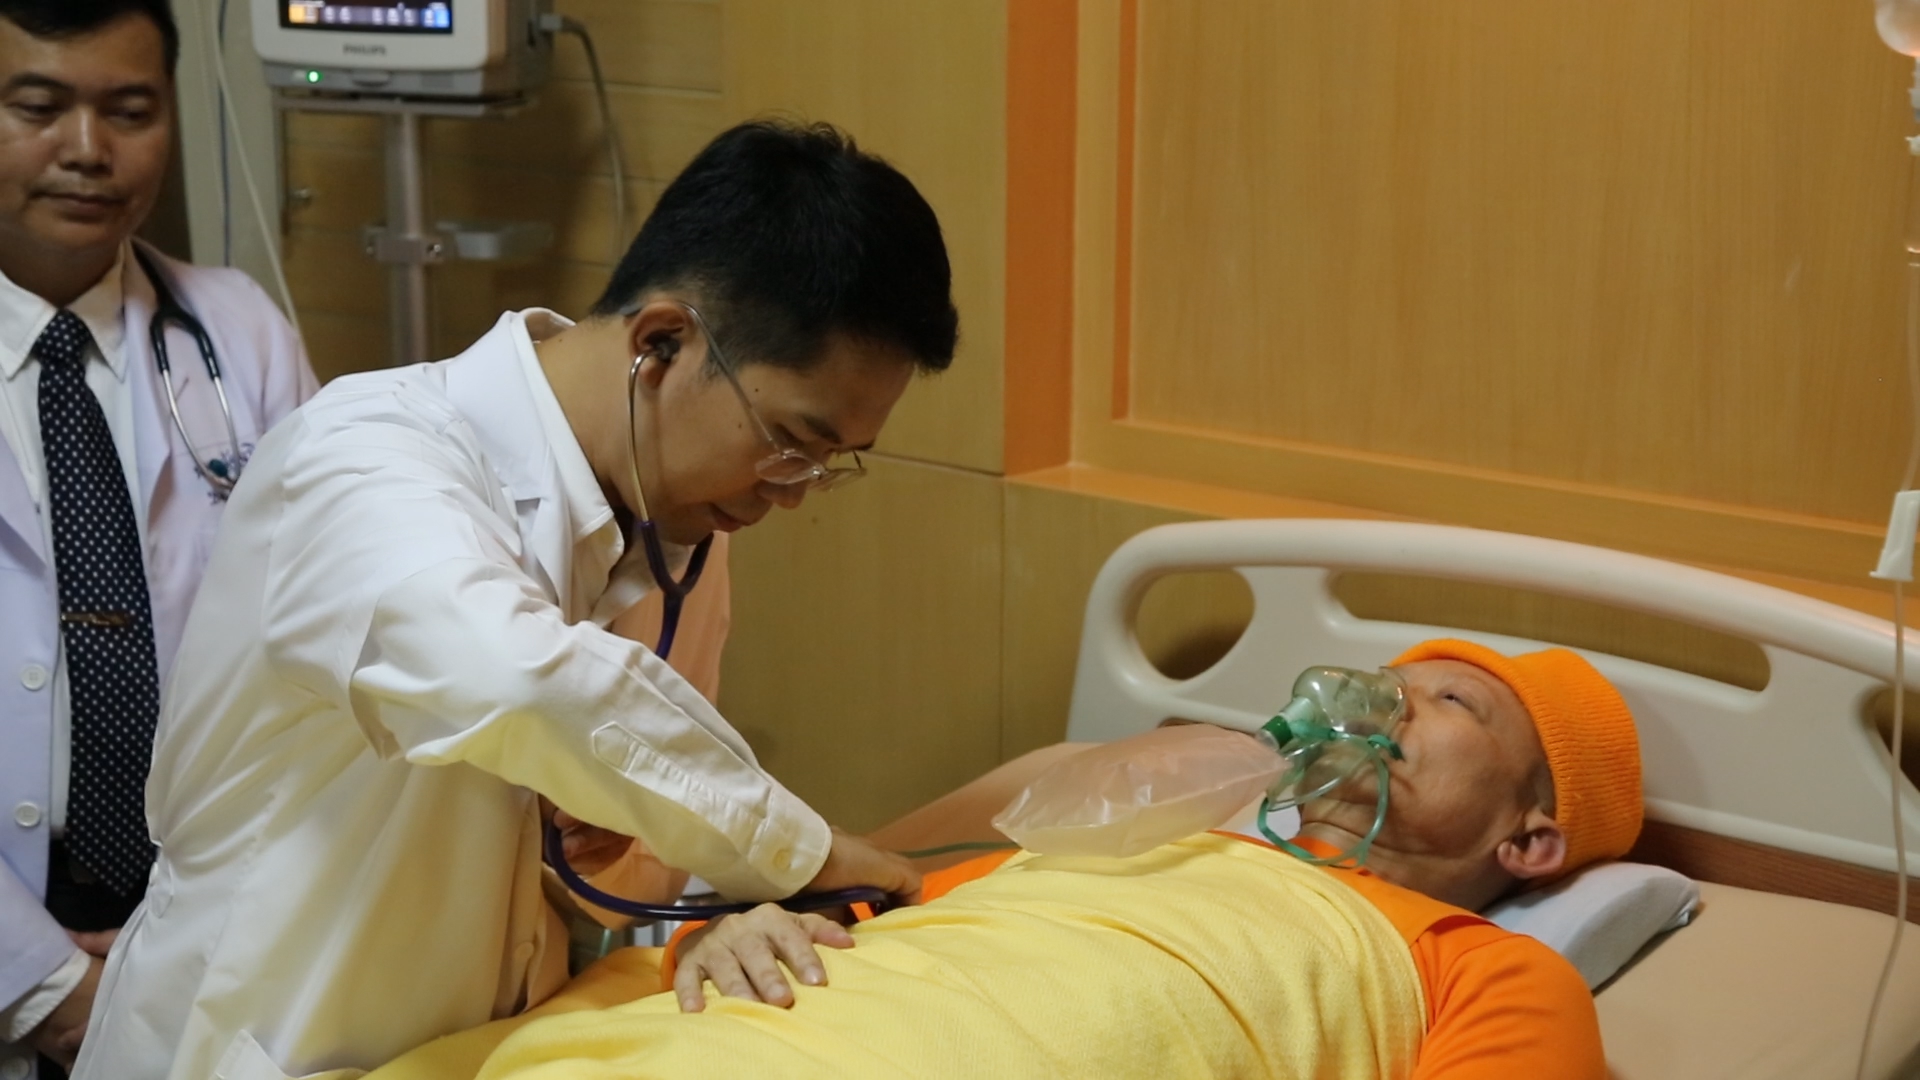 Physician performs medical examination of MV Dhammajayo on May 14, 2016